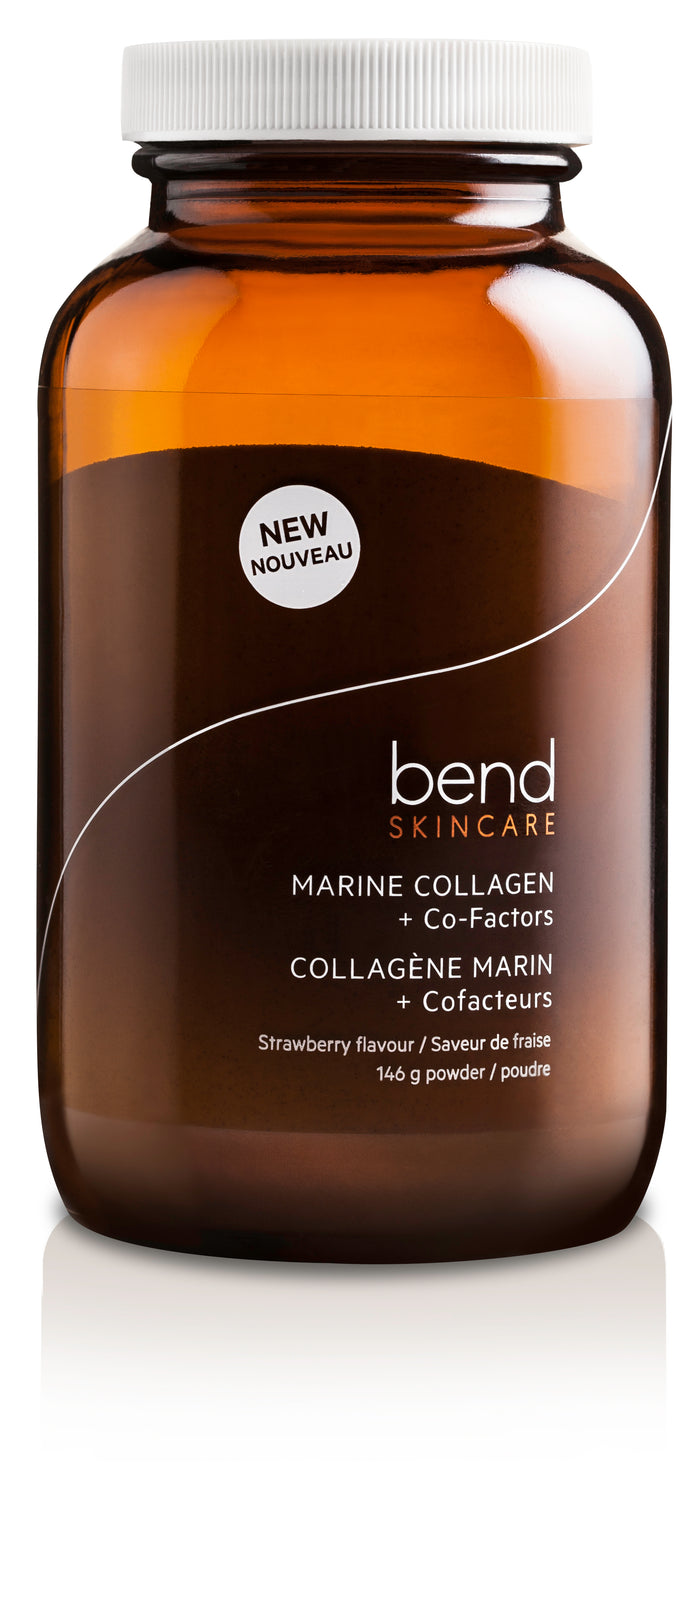 Bend Marine Collagen + Co-Factors